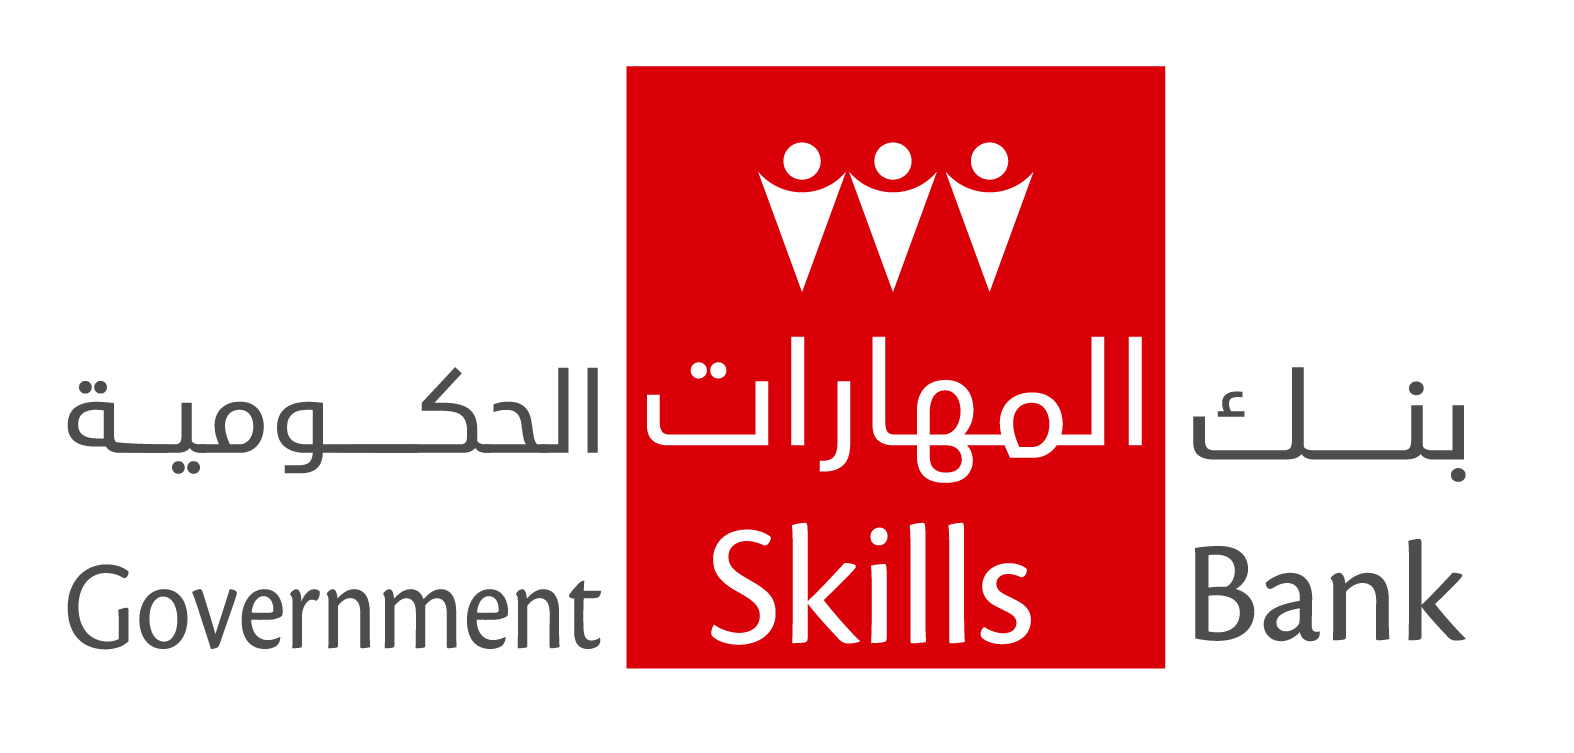 Government Skills Bank Logo